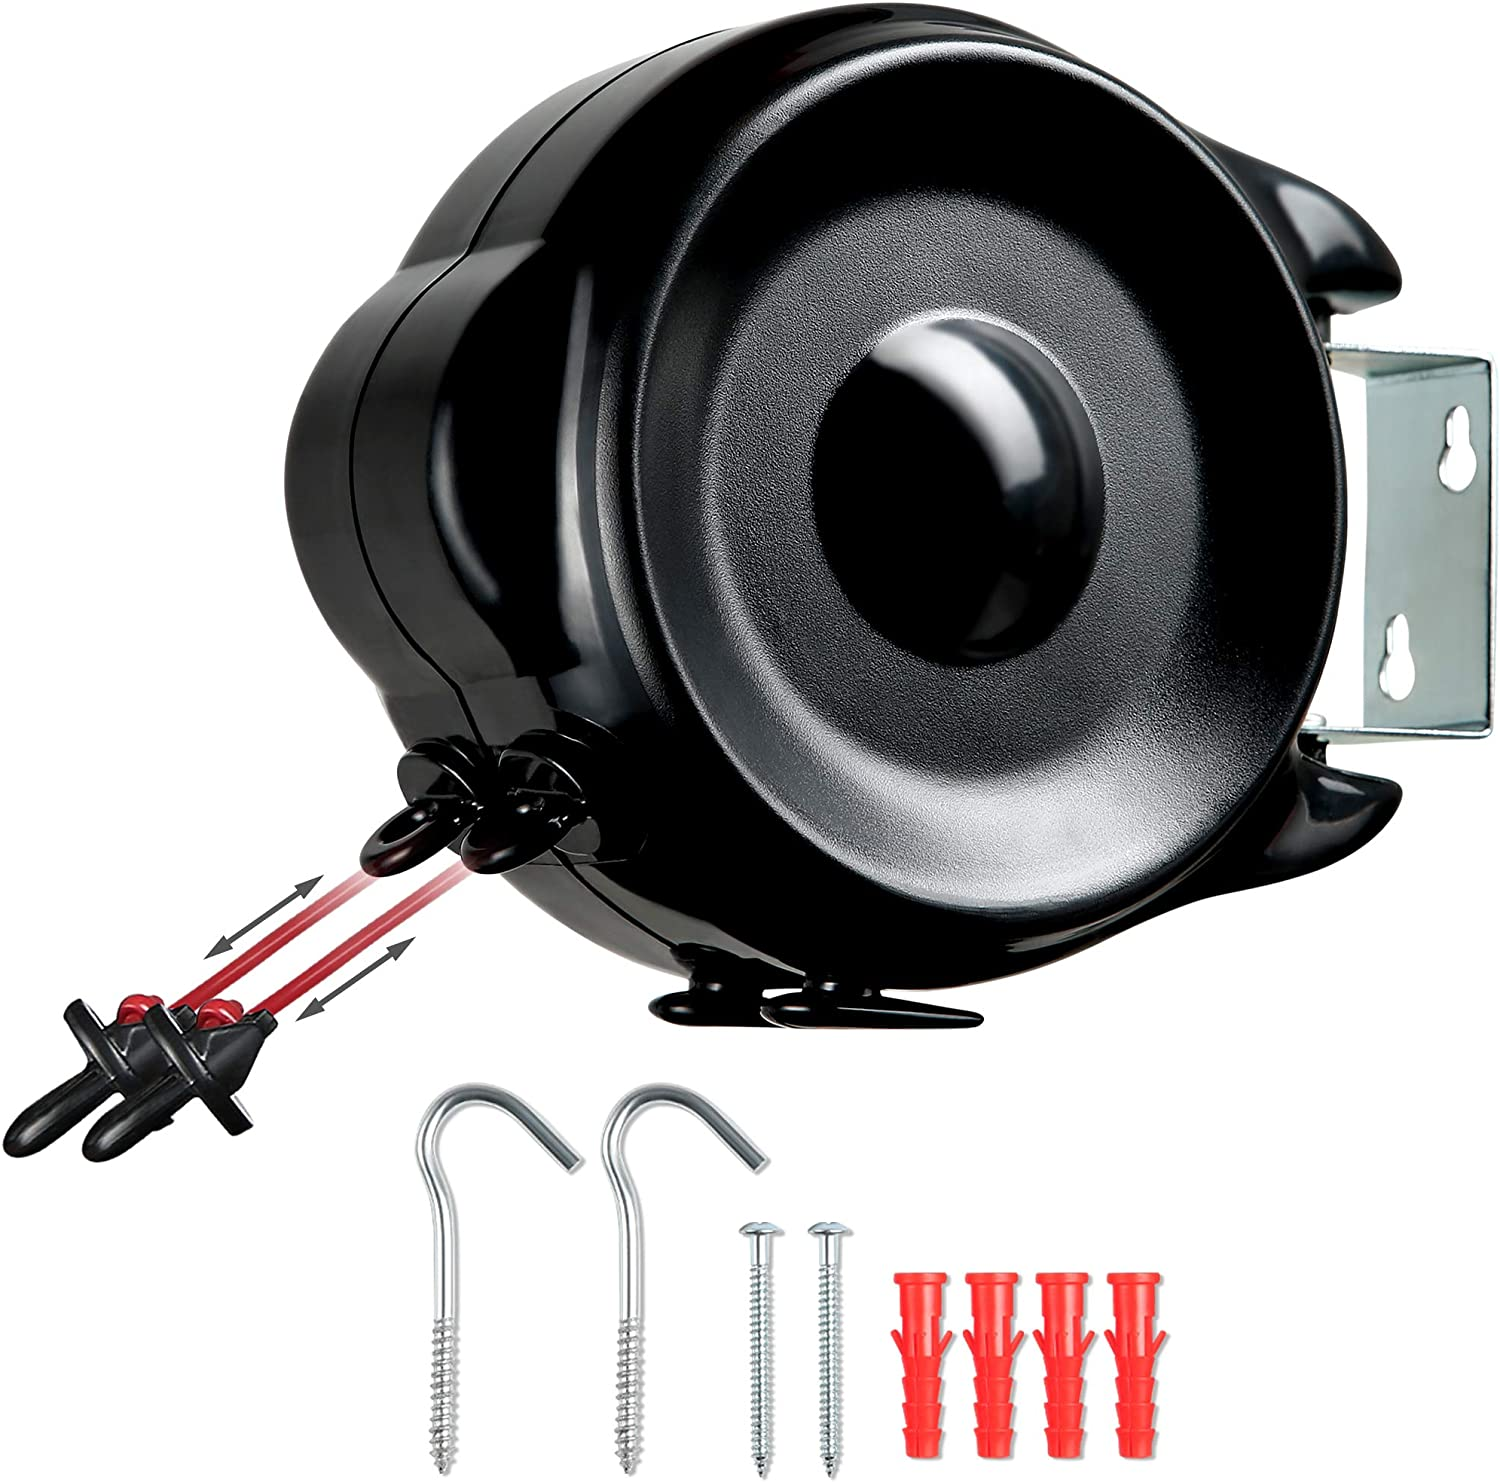 NETTA Retractable Reel Washing Line With 30M Drying Space (2 X 15M) Wall Mounted Heavy Duty Clothes Dryer, Black + Red.